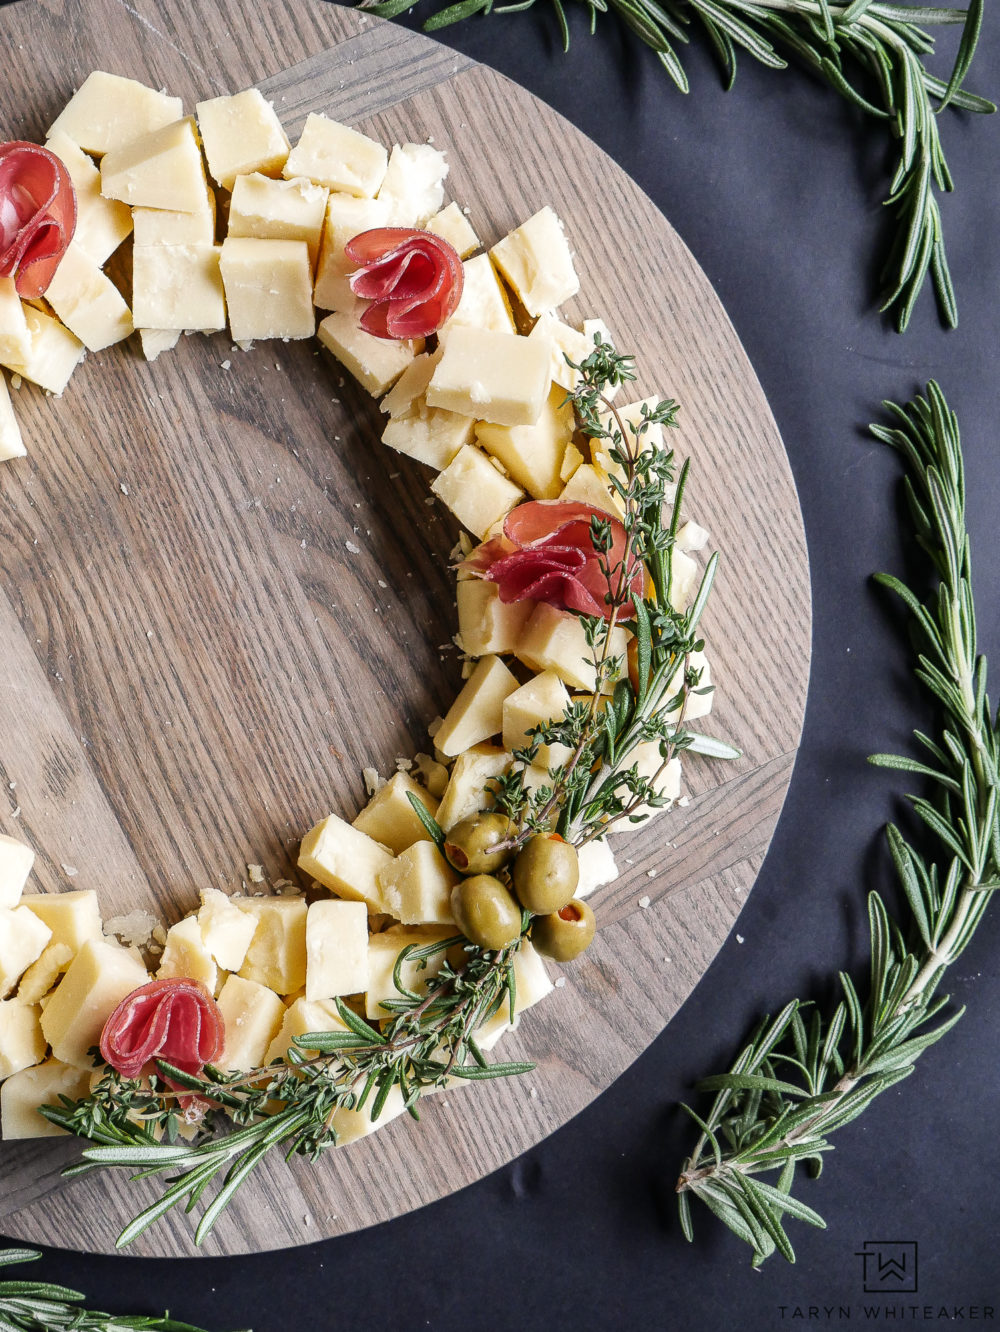 Impress your guests with the Christmas Wreath Cheese Board! Use fresh ingredients to create a beautiful presentation.